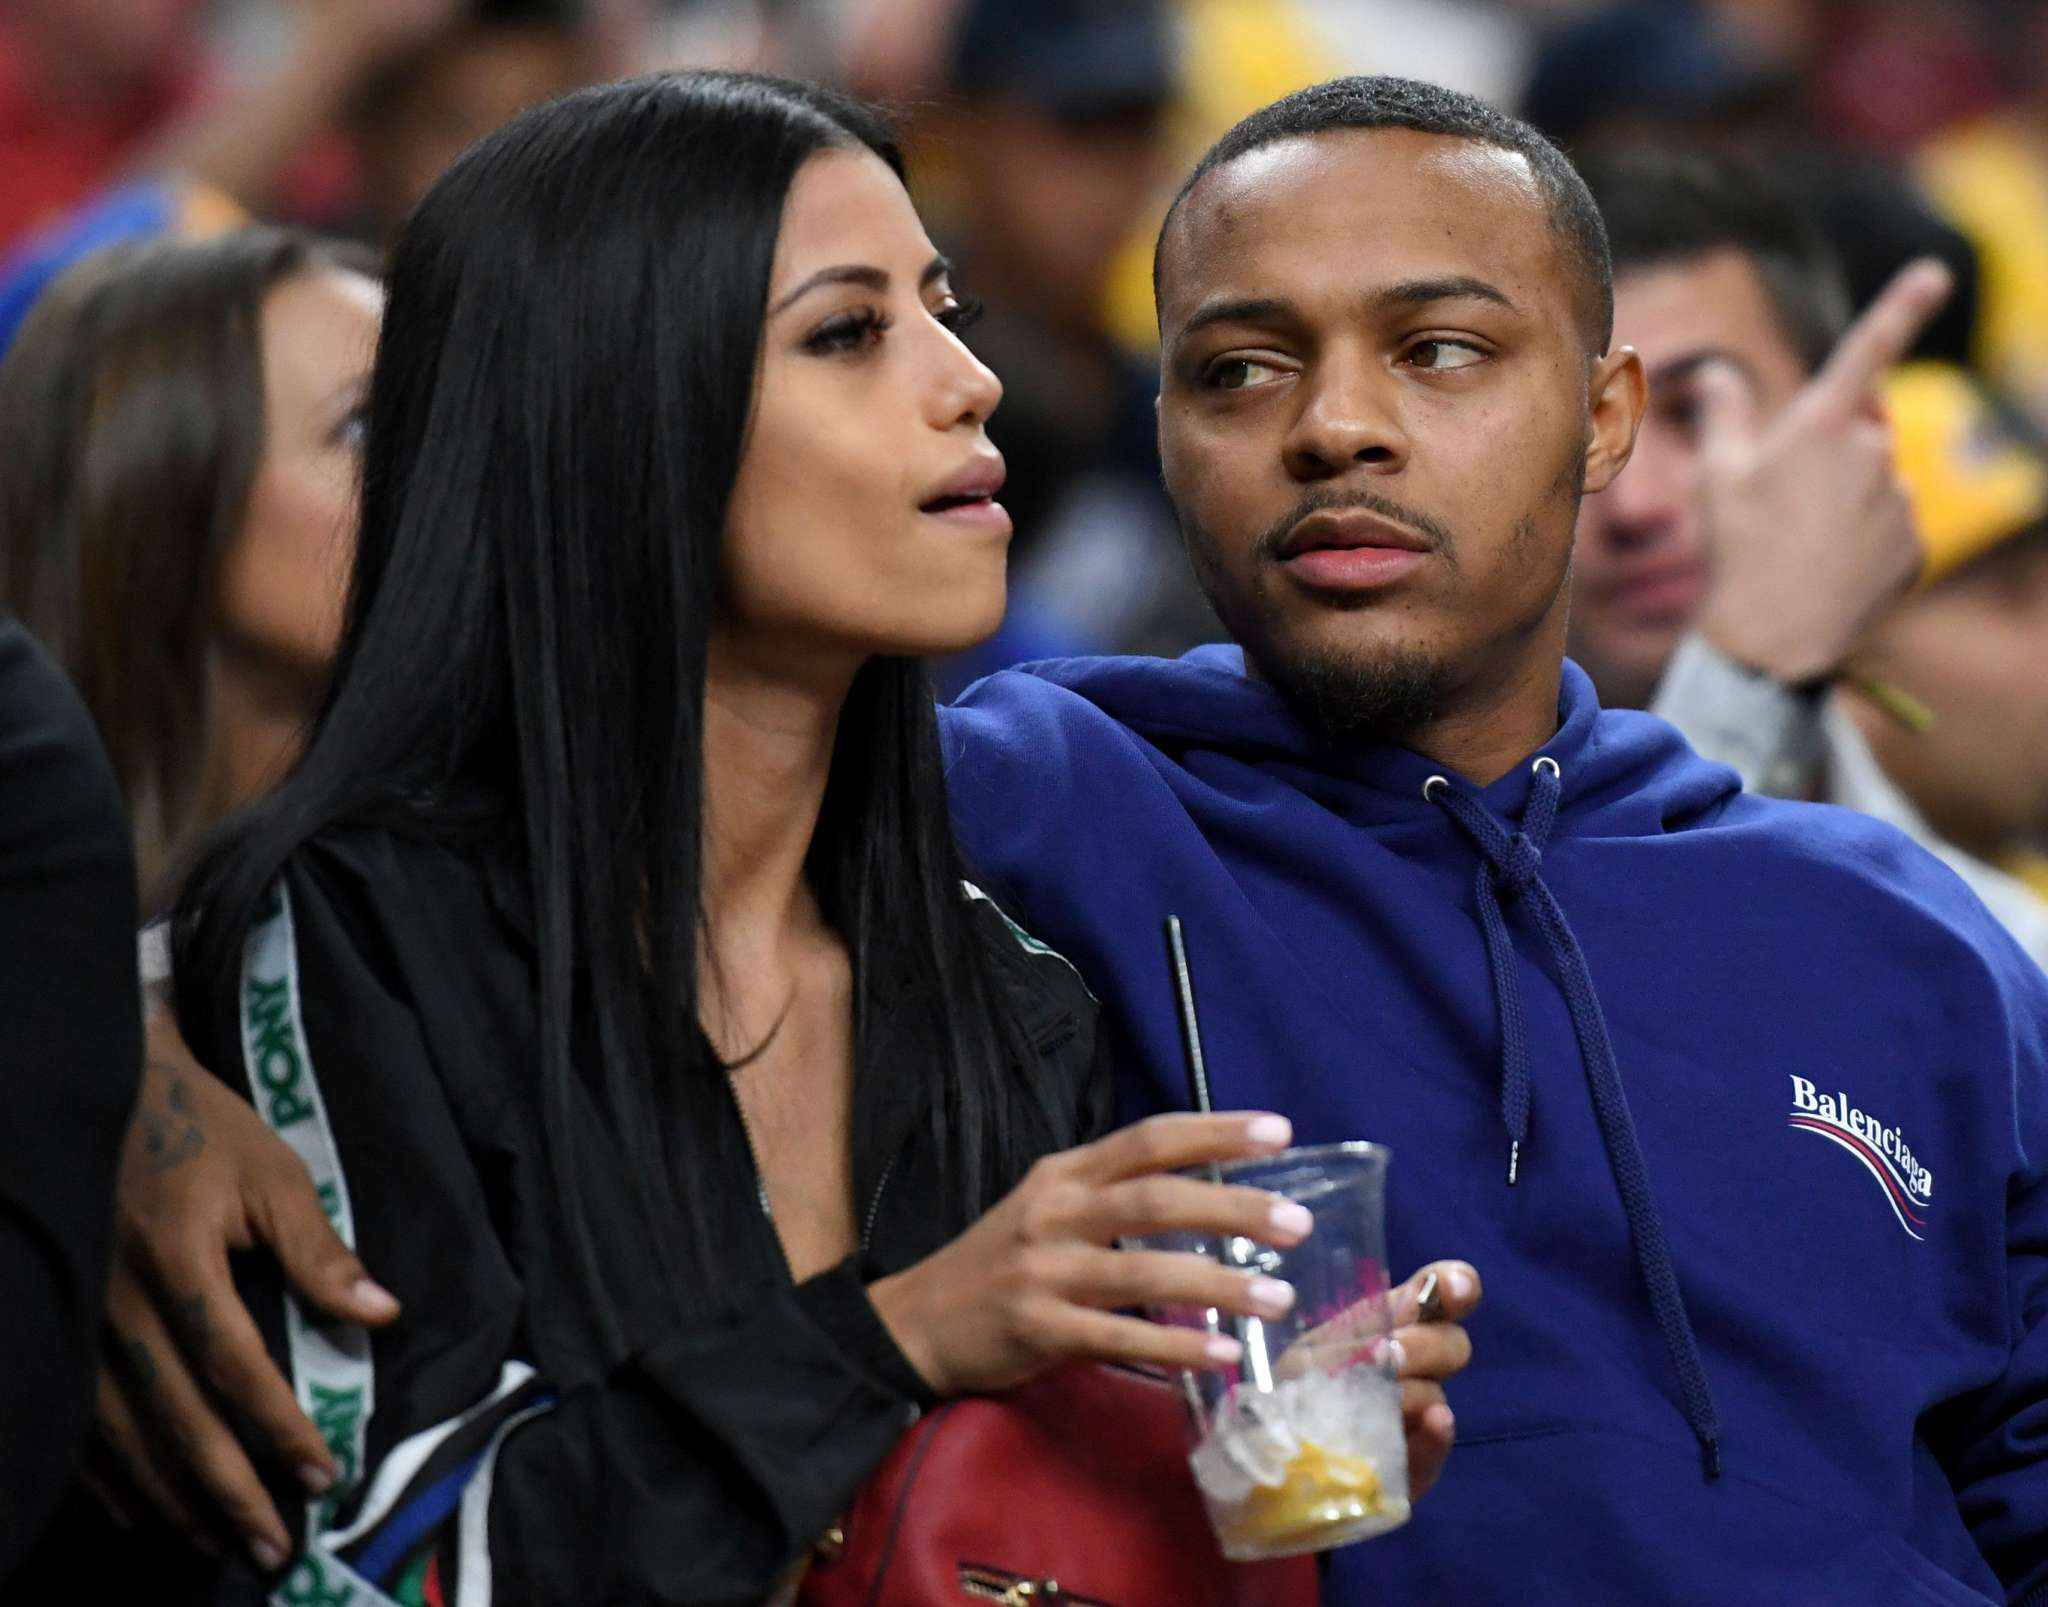 Bow Wow's Rep Says That Kiyomi Leslie Was The Main Aggressor In Their Fight